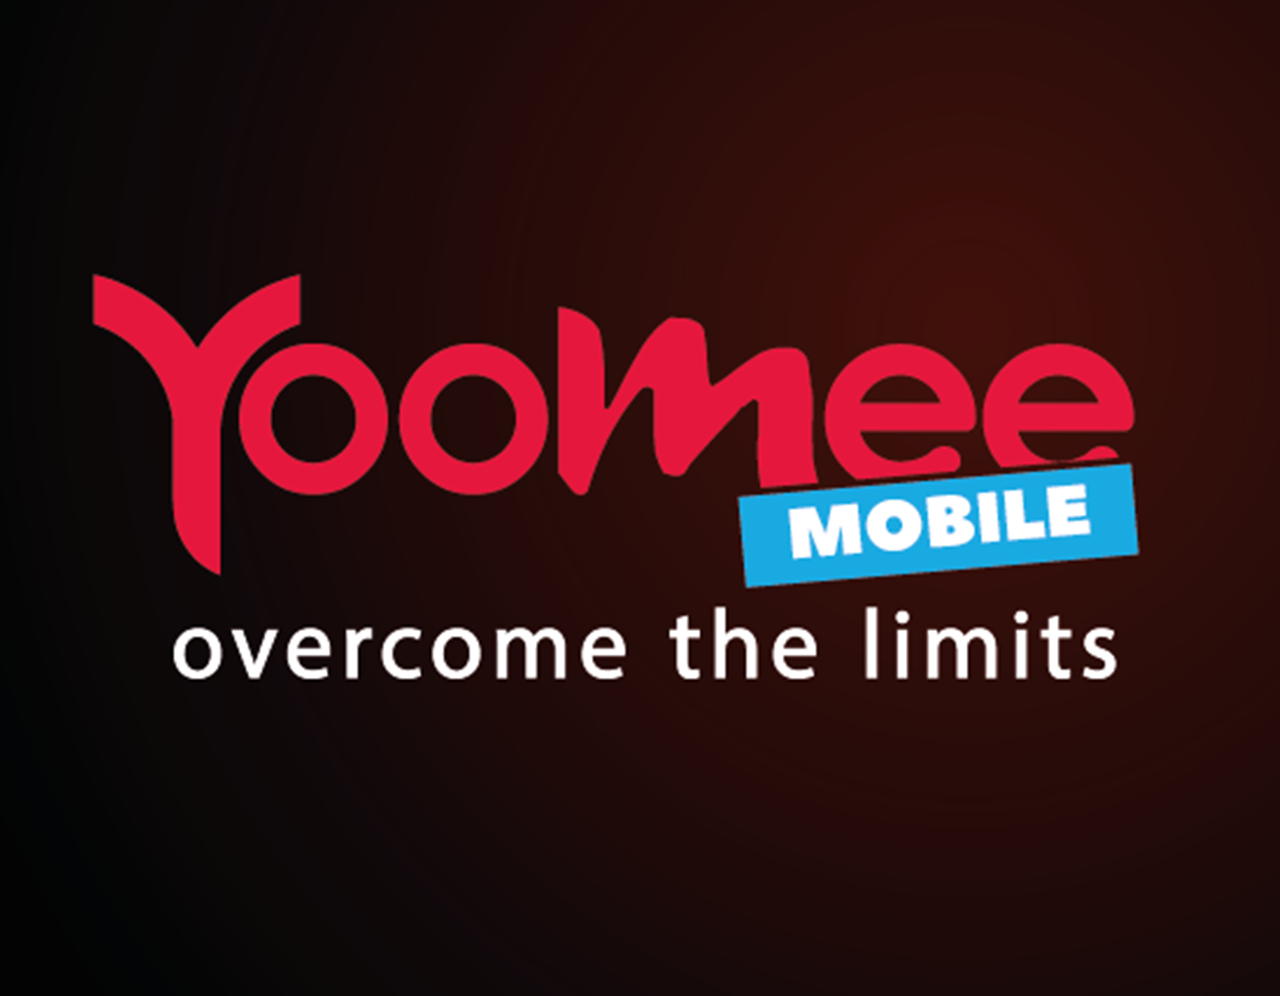 Configure Yoomee 4G APN on Smartphone, Modem/ Router and Computer Updated